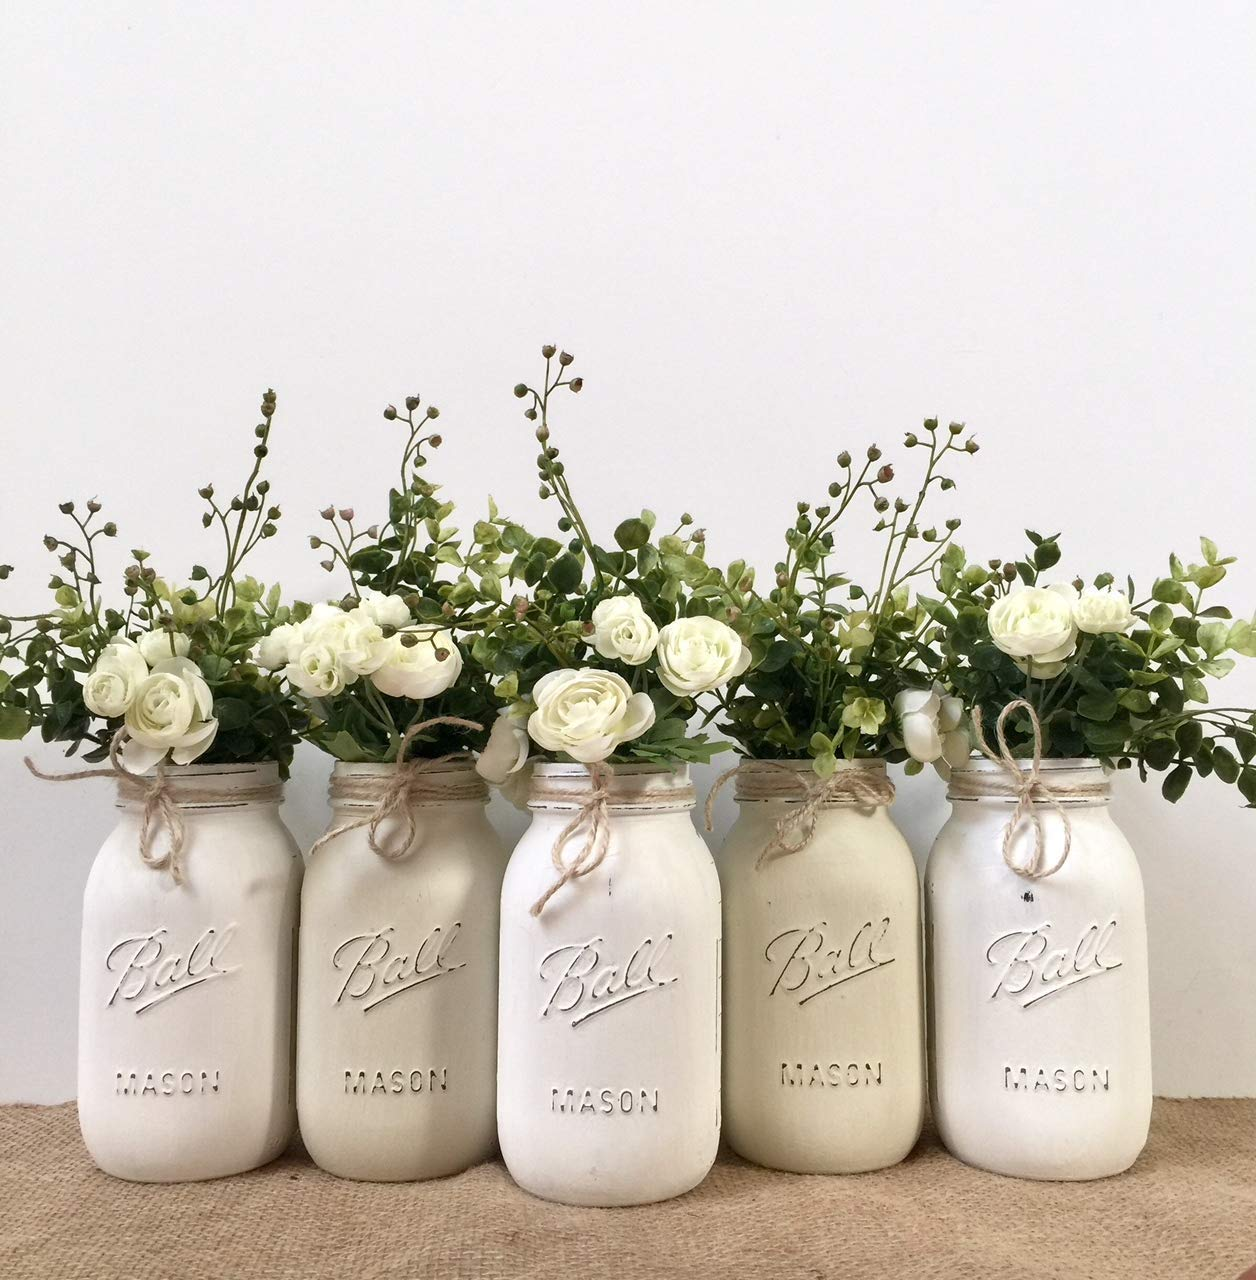 Amazon Com Set Of 5 Rustic Hand Painted And Distressed Baptism Centerpieces Mason Jars Your Choice Of Jar Colors Silk Flowers And Cross Toppers Optional Pint Or Quart Size Handmade